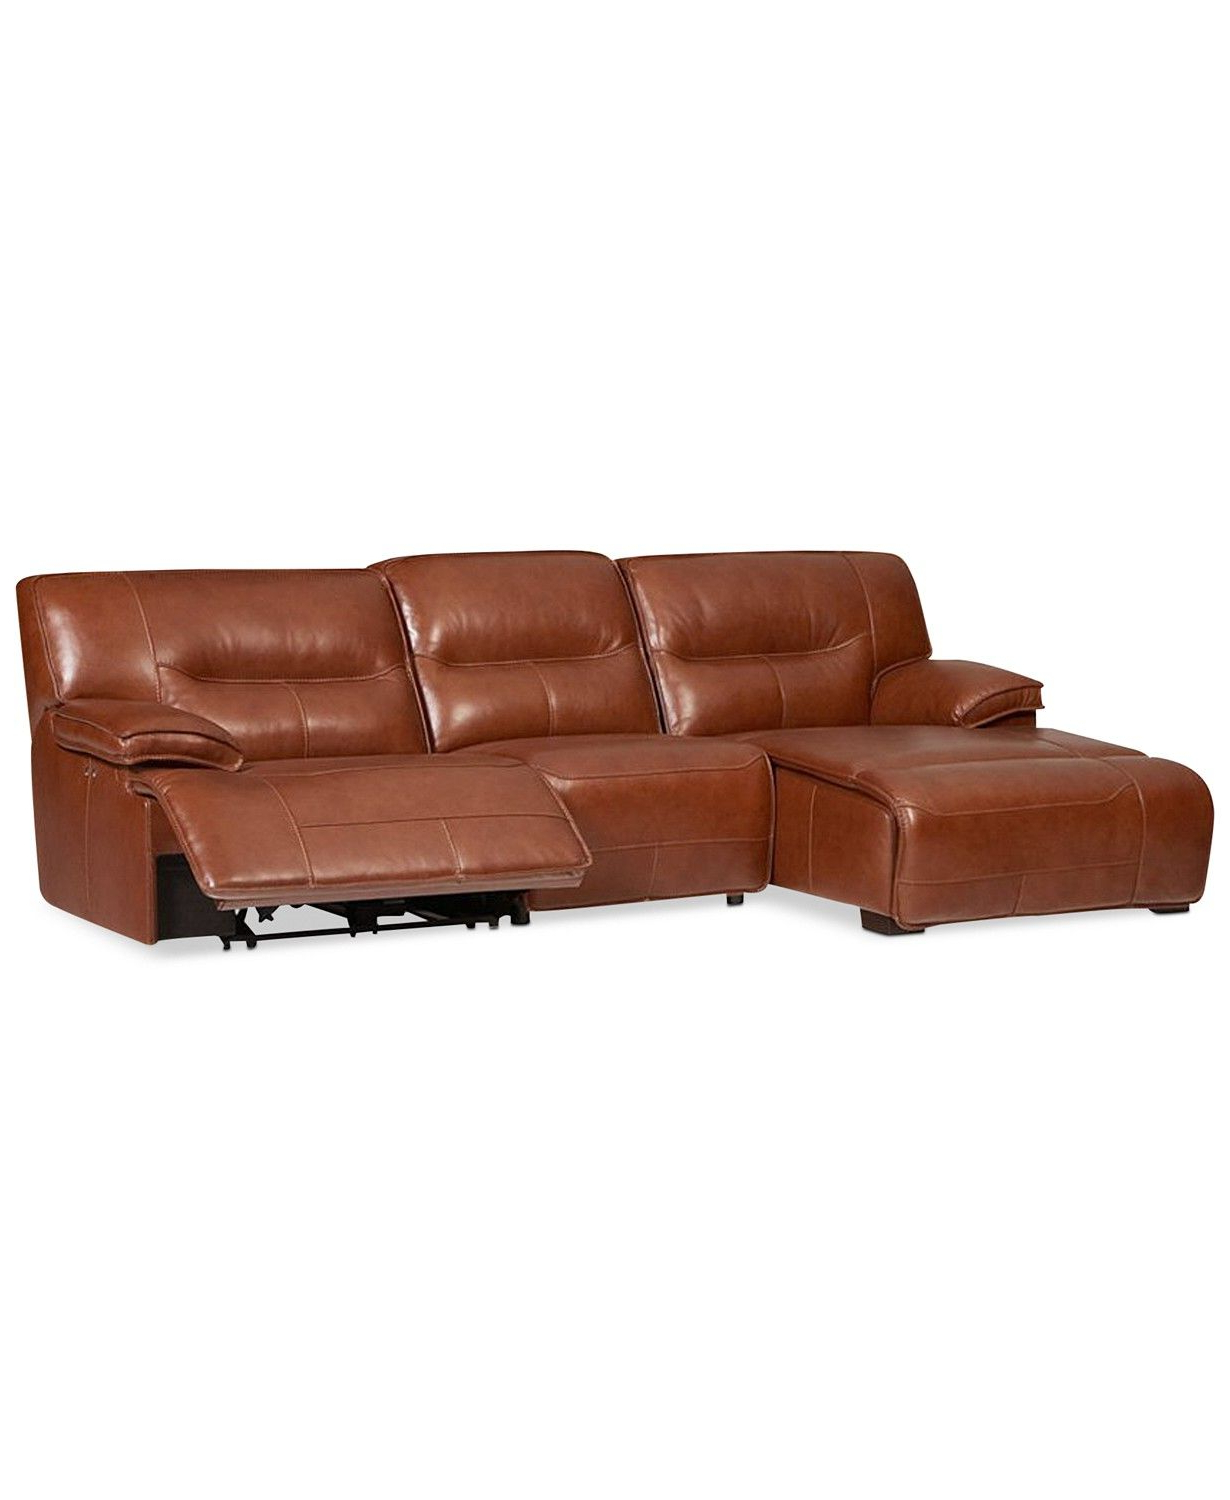 Fashionable 3Pc Miles Leather Sectional Sofas With Chaise Throughout Furniture Beckett 3 Pc Leather Sectional Sofa With Chaise (View 21 of 25)